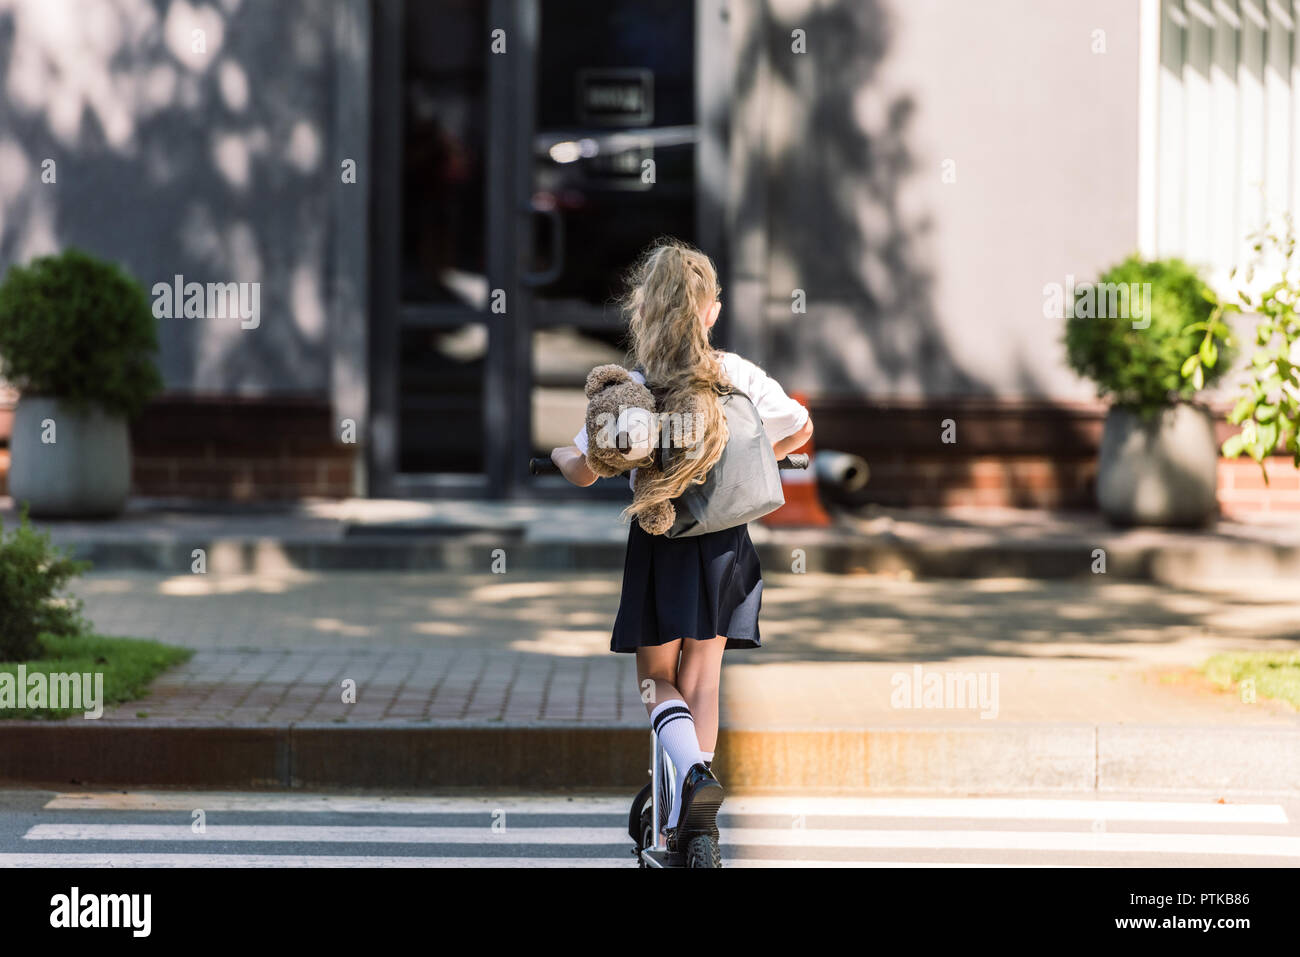 rear view of cute little schoolkid with backpack and teddy bear riding scooter on street - Stock Image